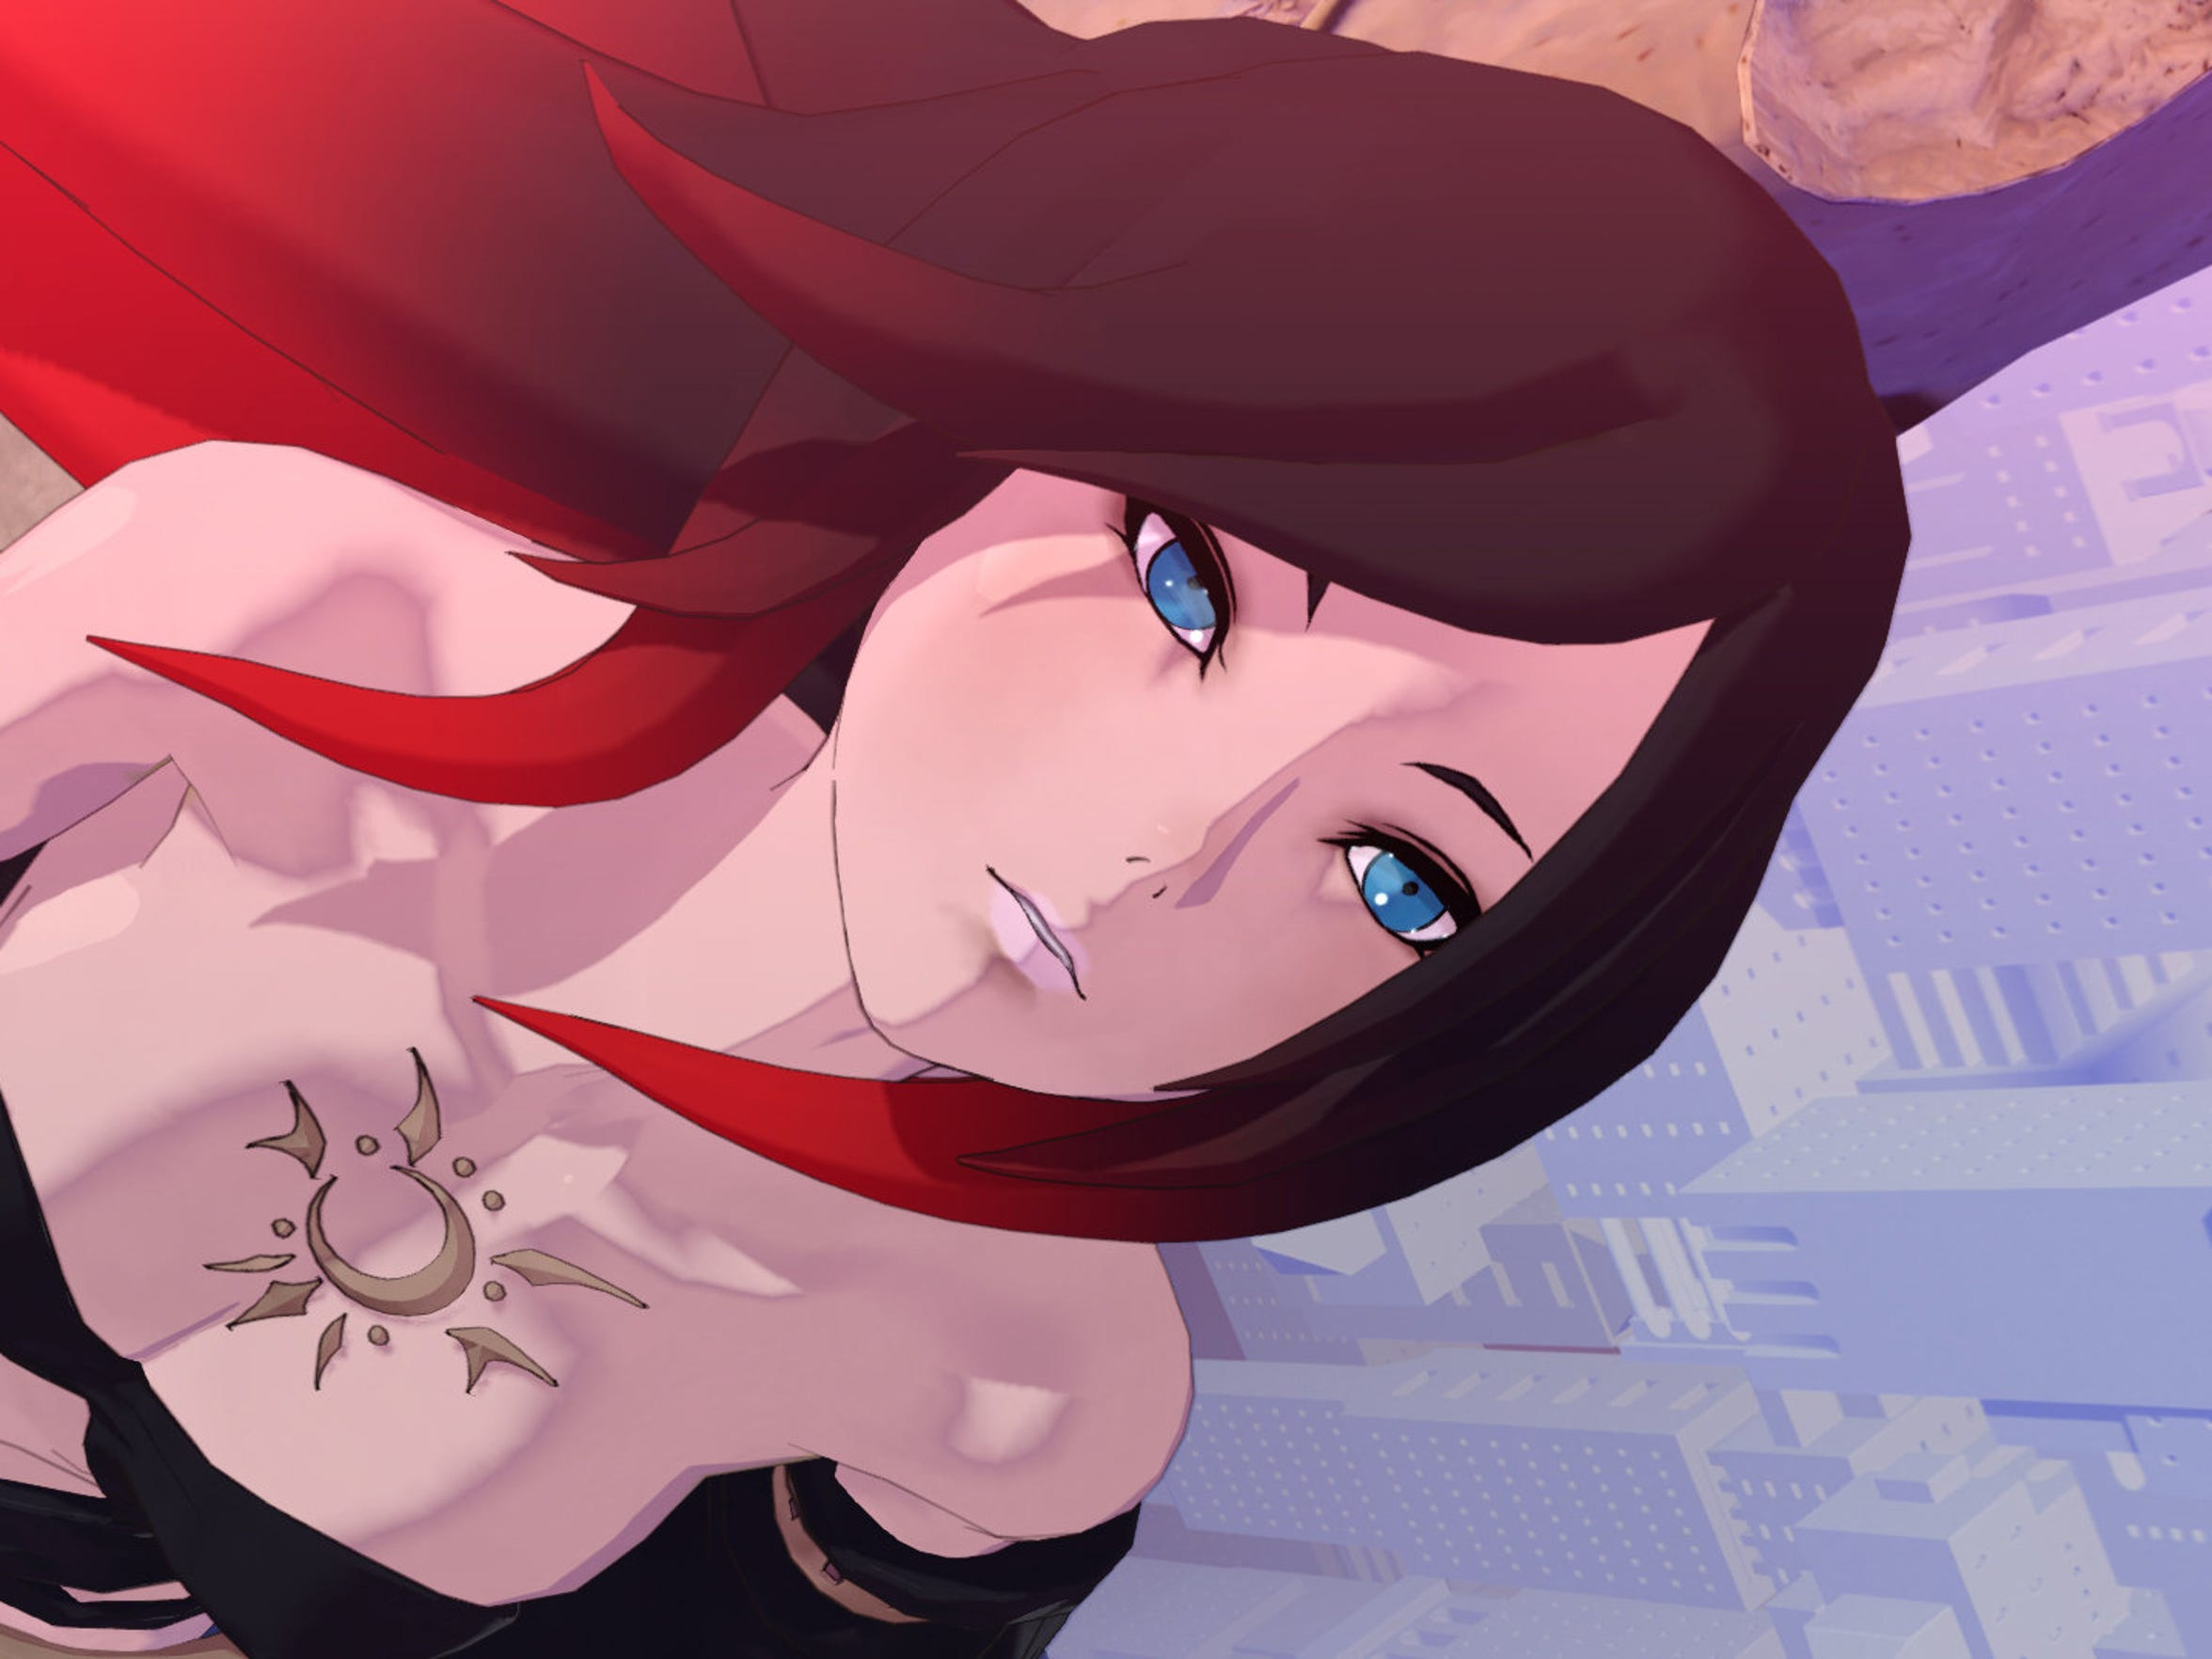 The powerful Raven makes an appearance in Gravity Rush